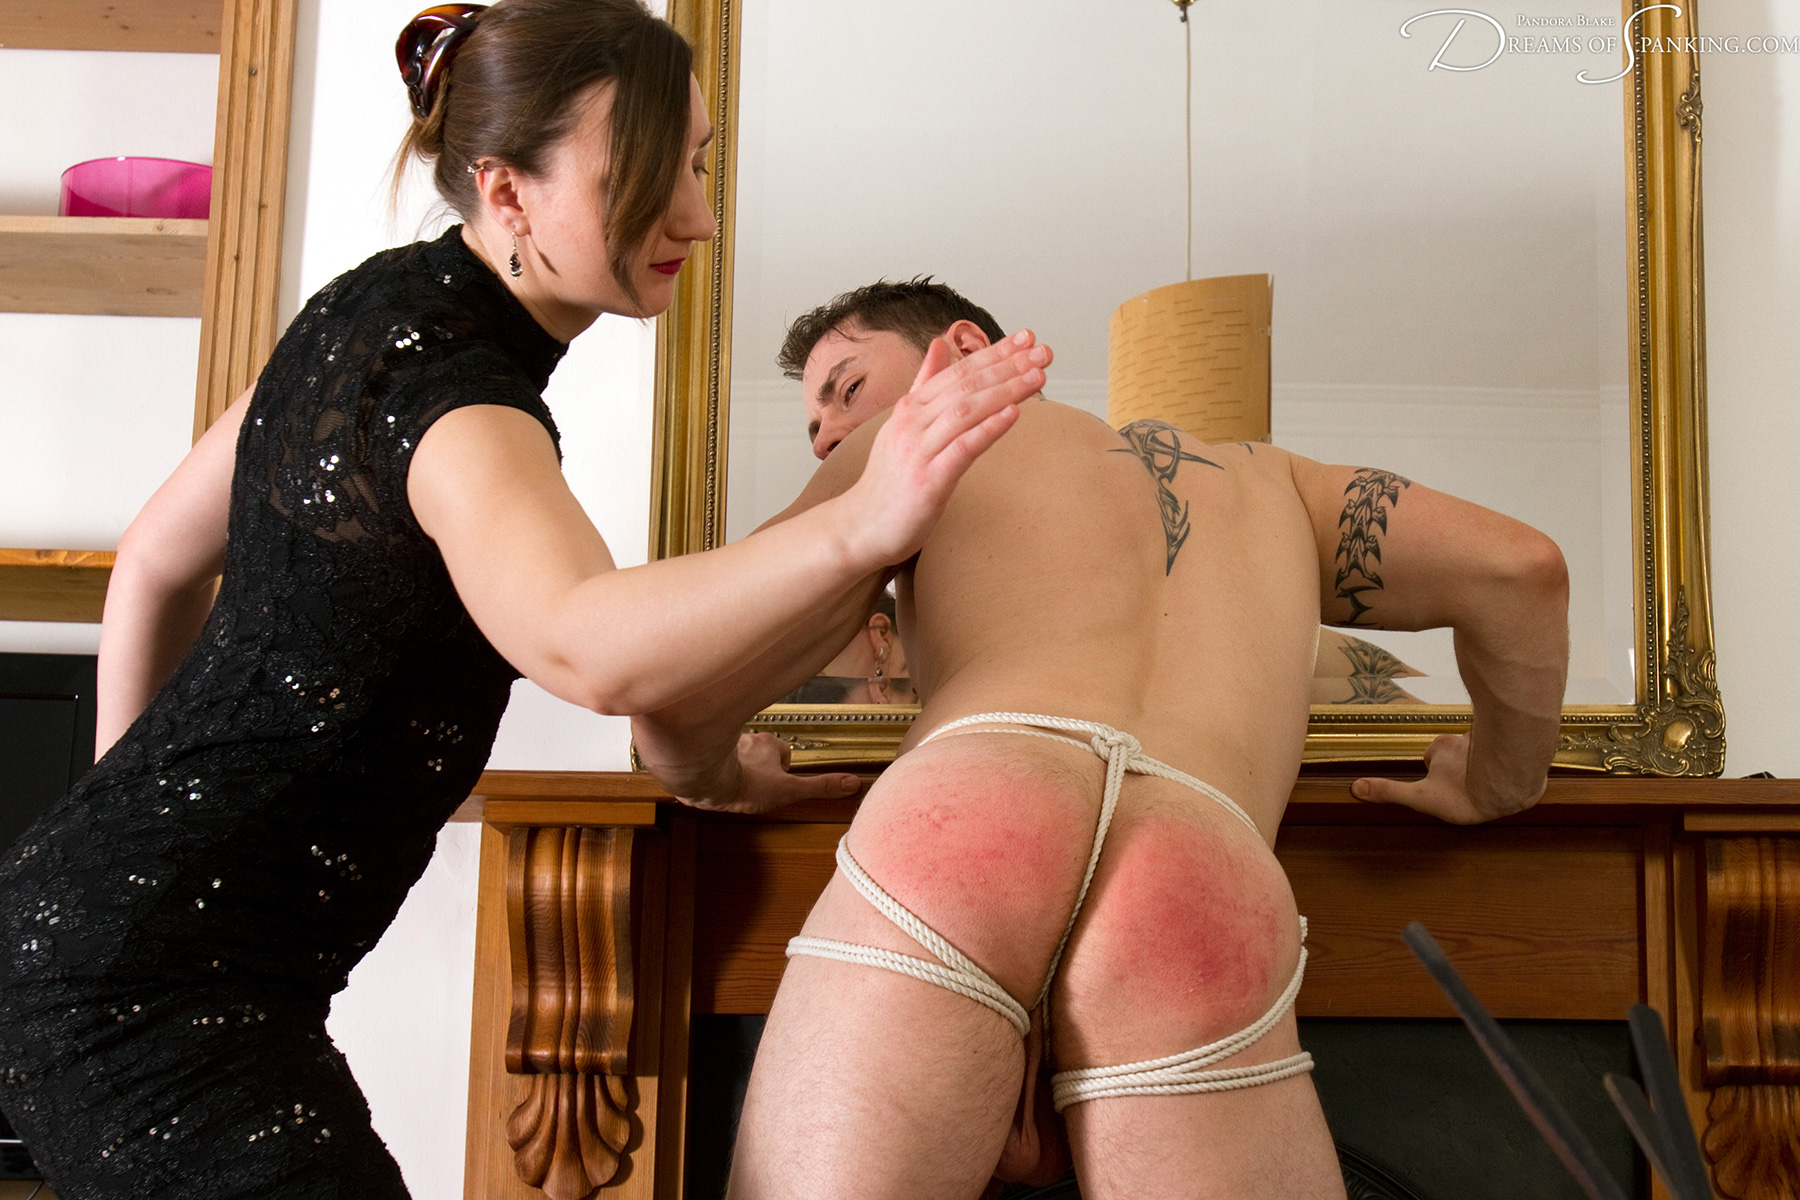 from Matthias gay man boy spanking pictires gallery